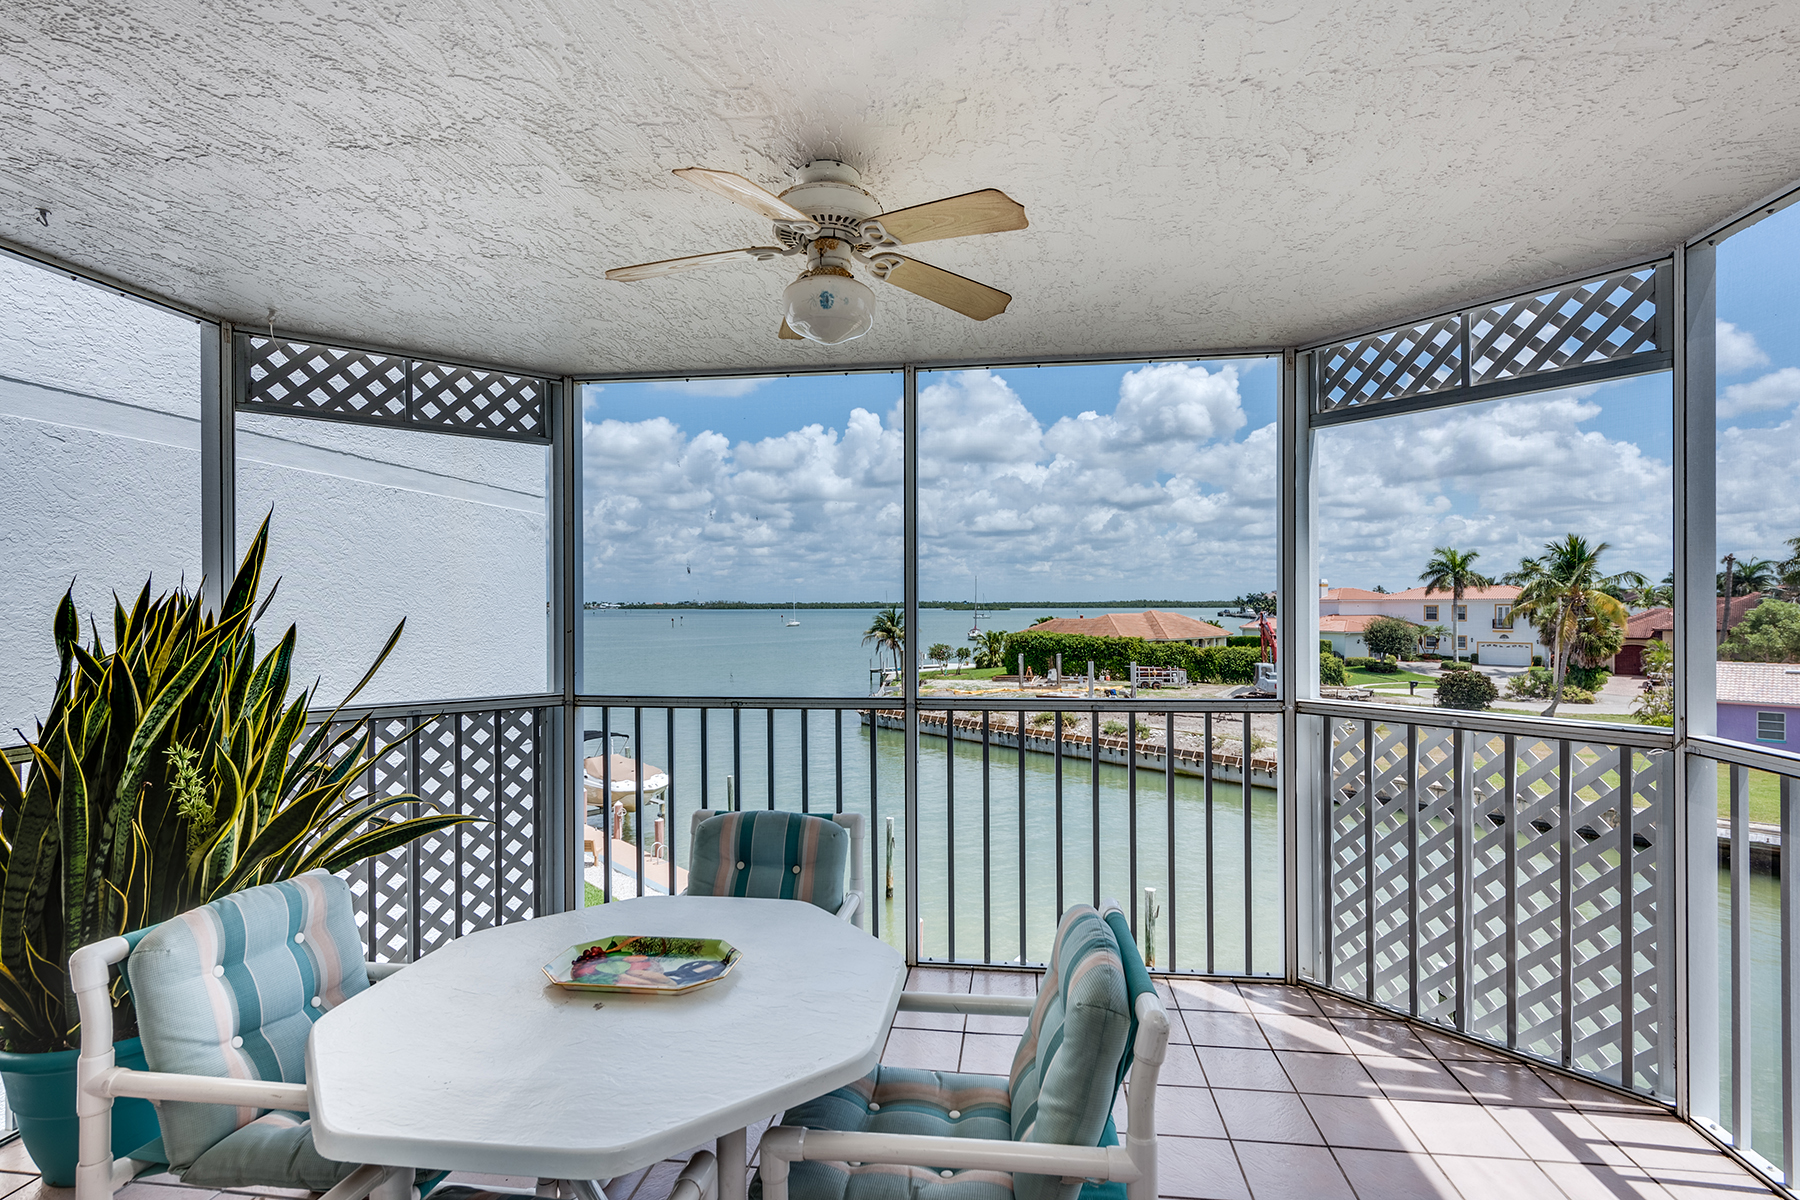 Property for Sale at MARCO ISLAND - GRAND BAY 991 N Barfield Drive , 304, Marco Island, Florida 34145 United States